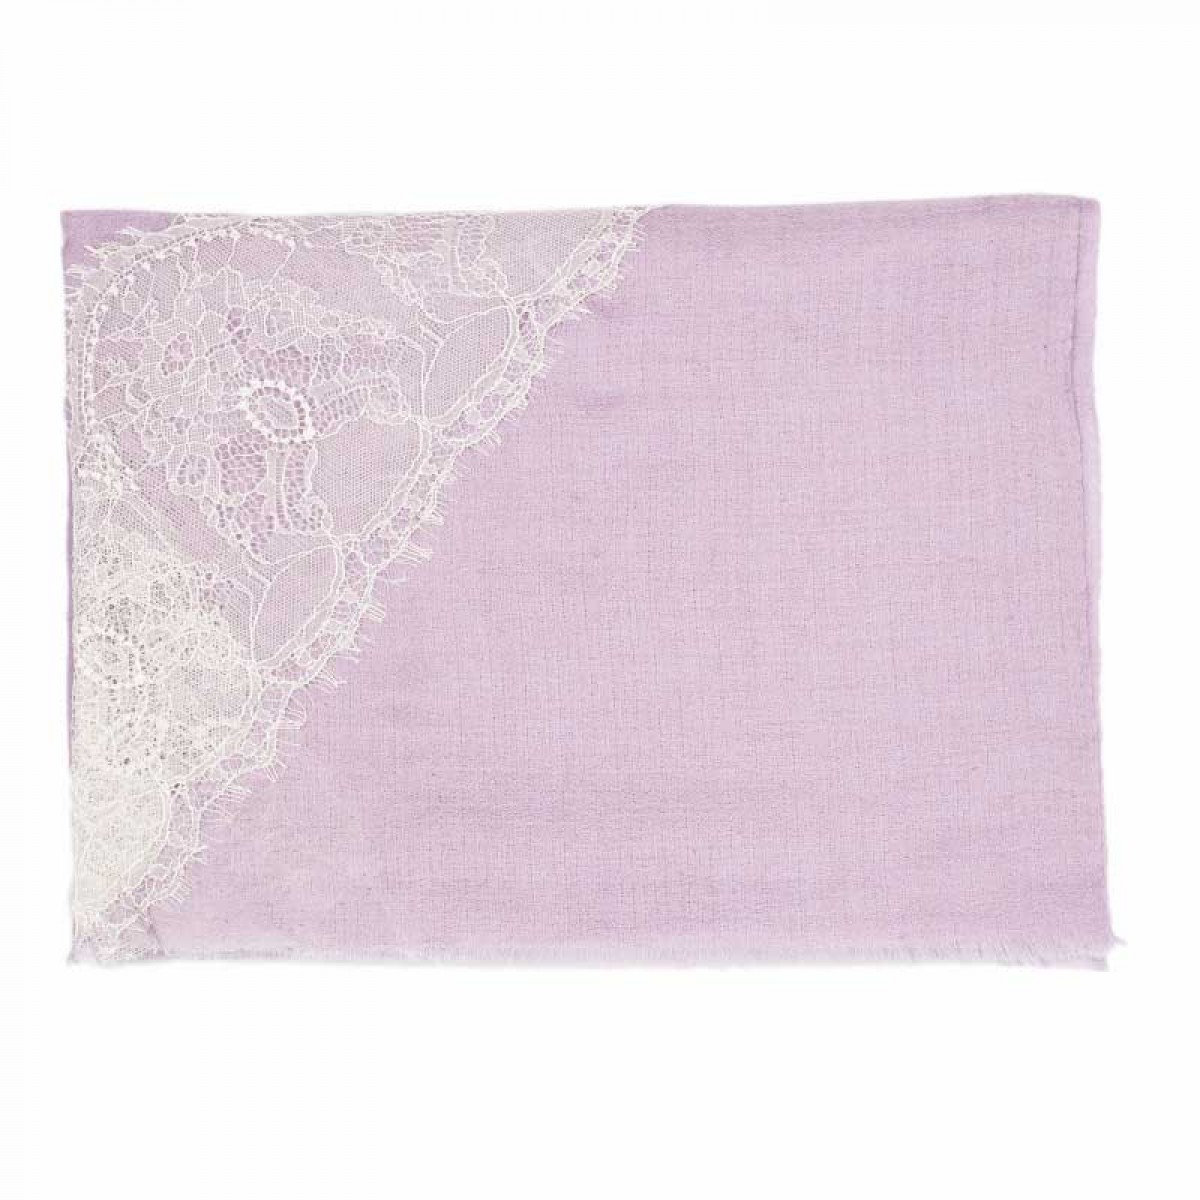 Lace Twill Pashmina Scarf Cross Stripes  - Lilac